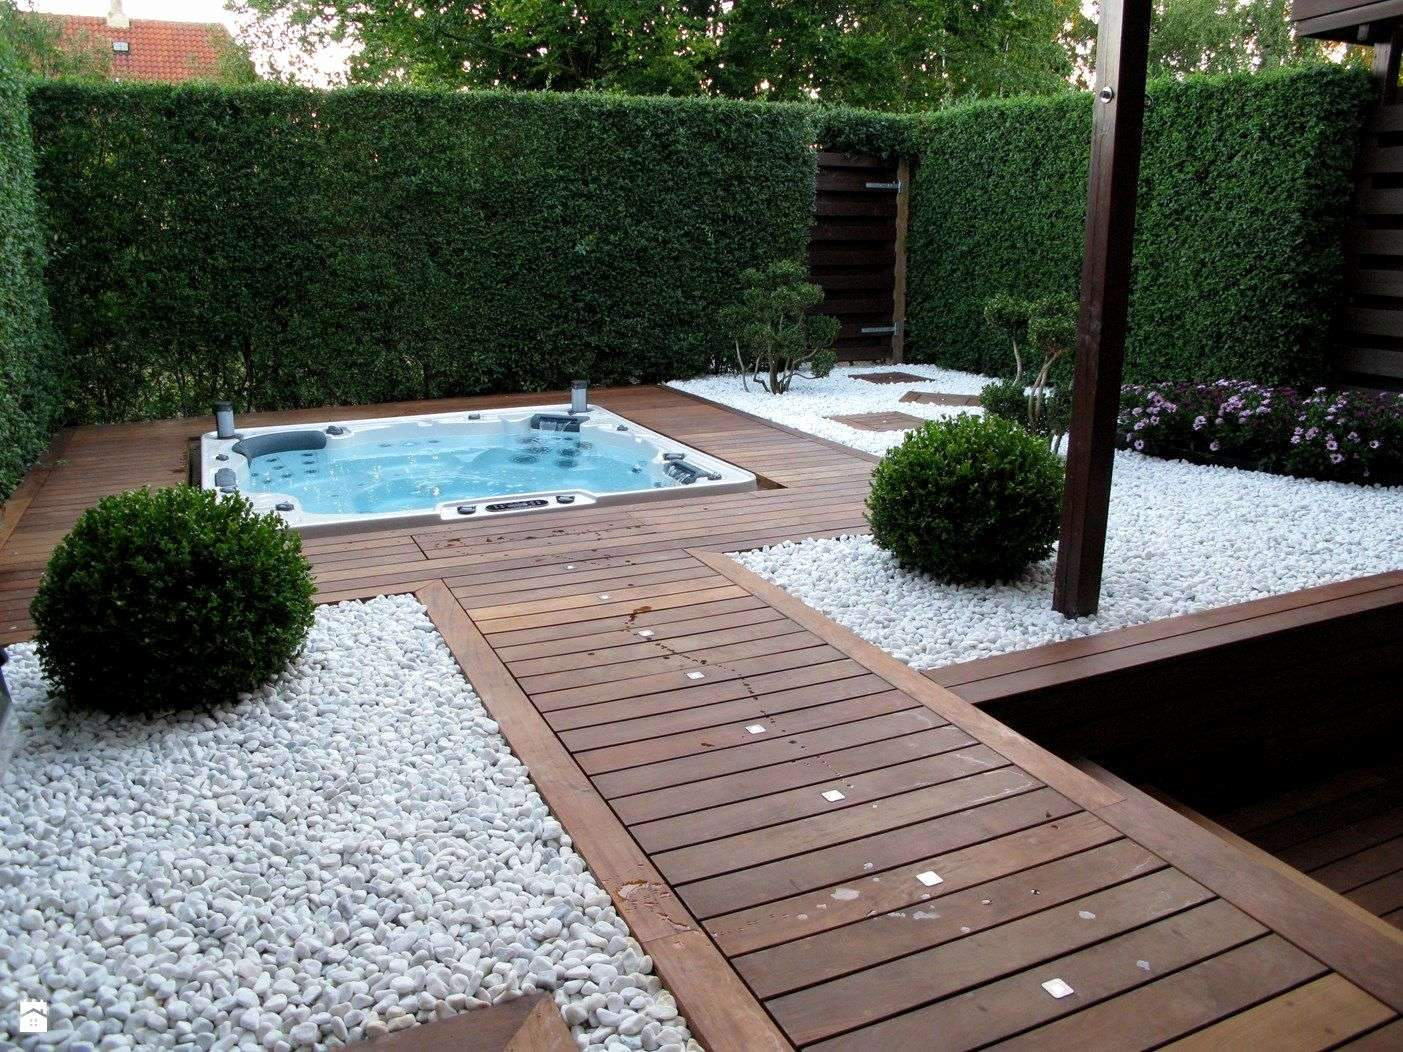 garden tub with jets best of jacuzzi garten elegant ez pad hot tub spa base nice surrounding of garden tub with jets